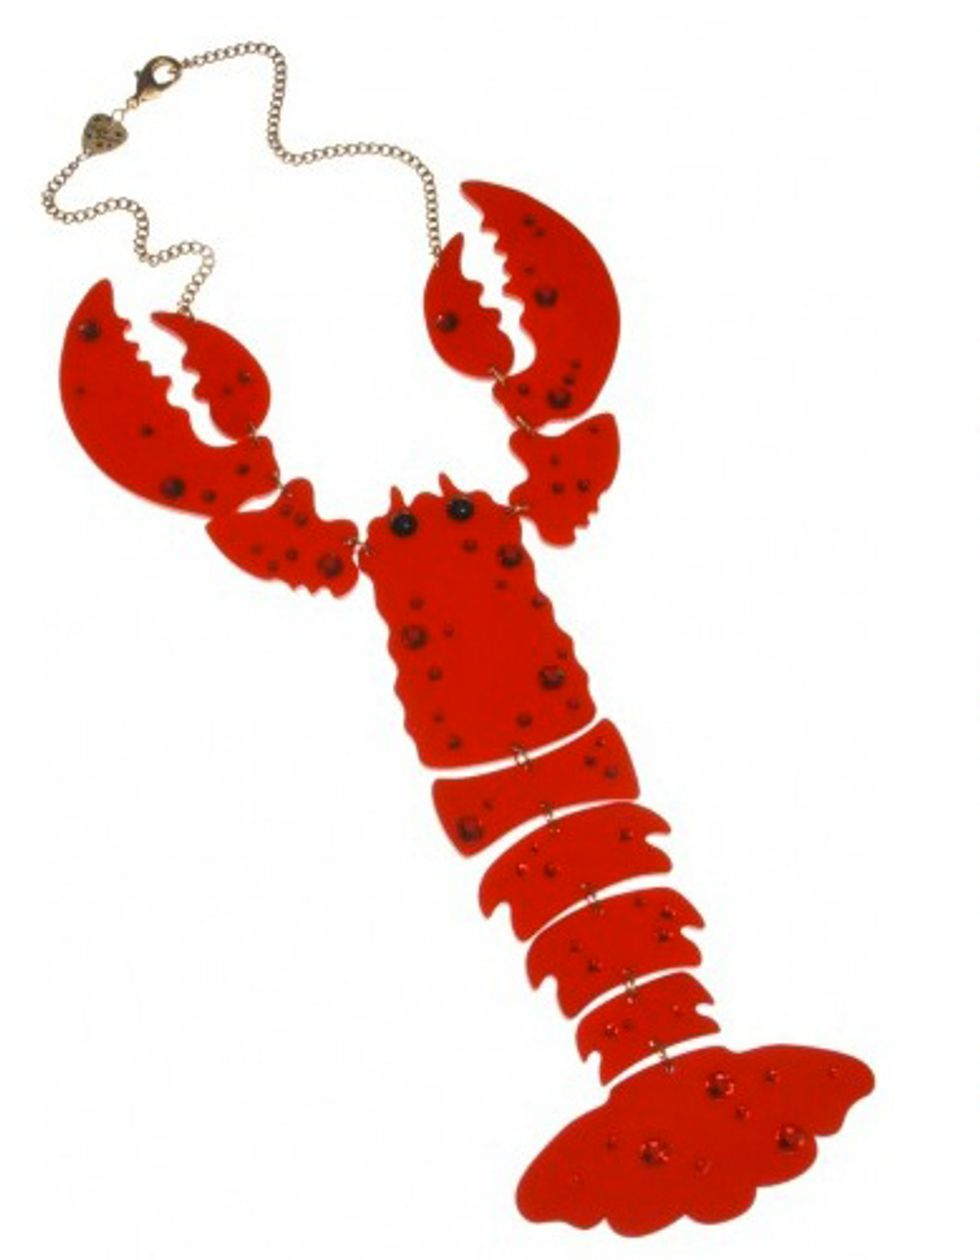 Eight Items or Less: Wear, Don't Eat, Crustaceans